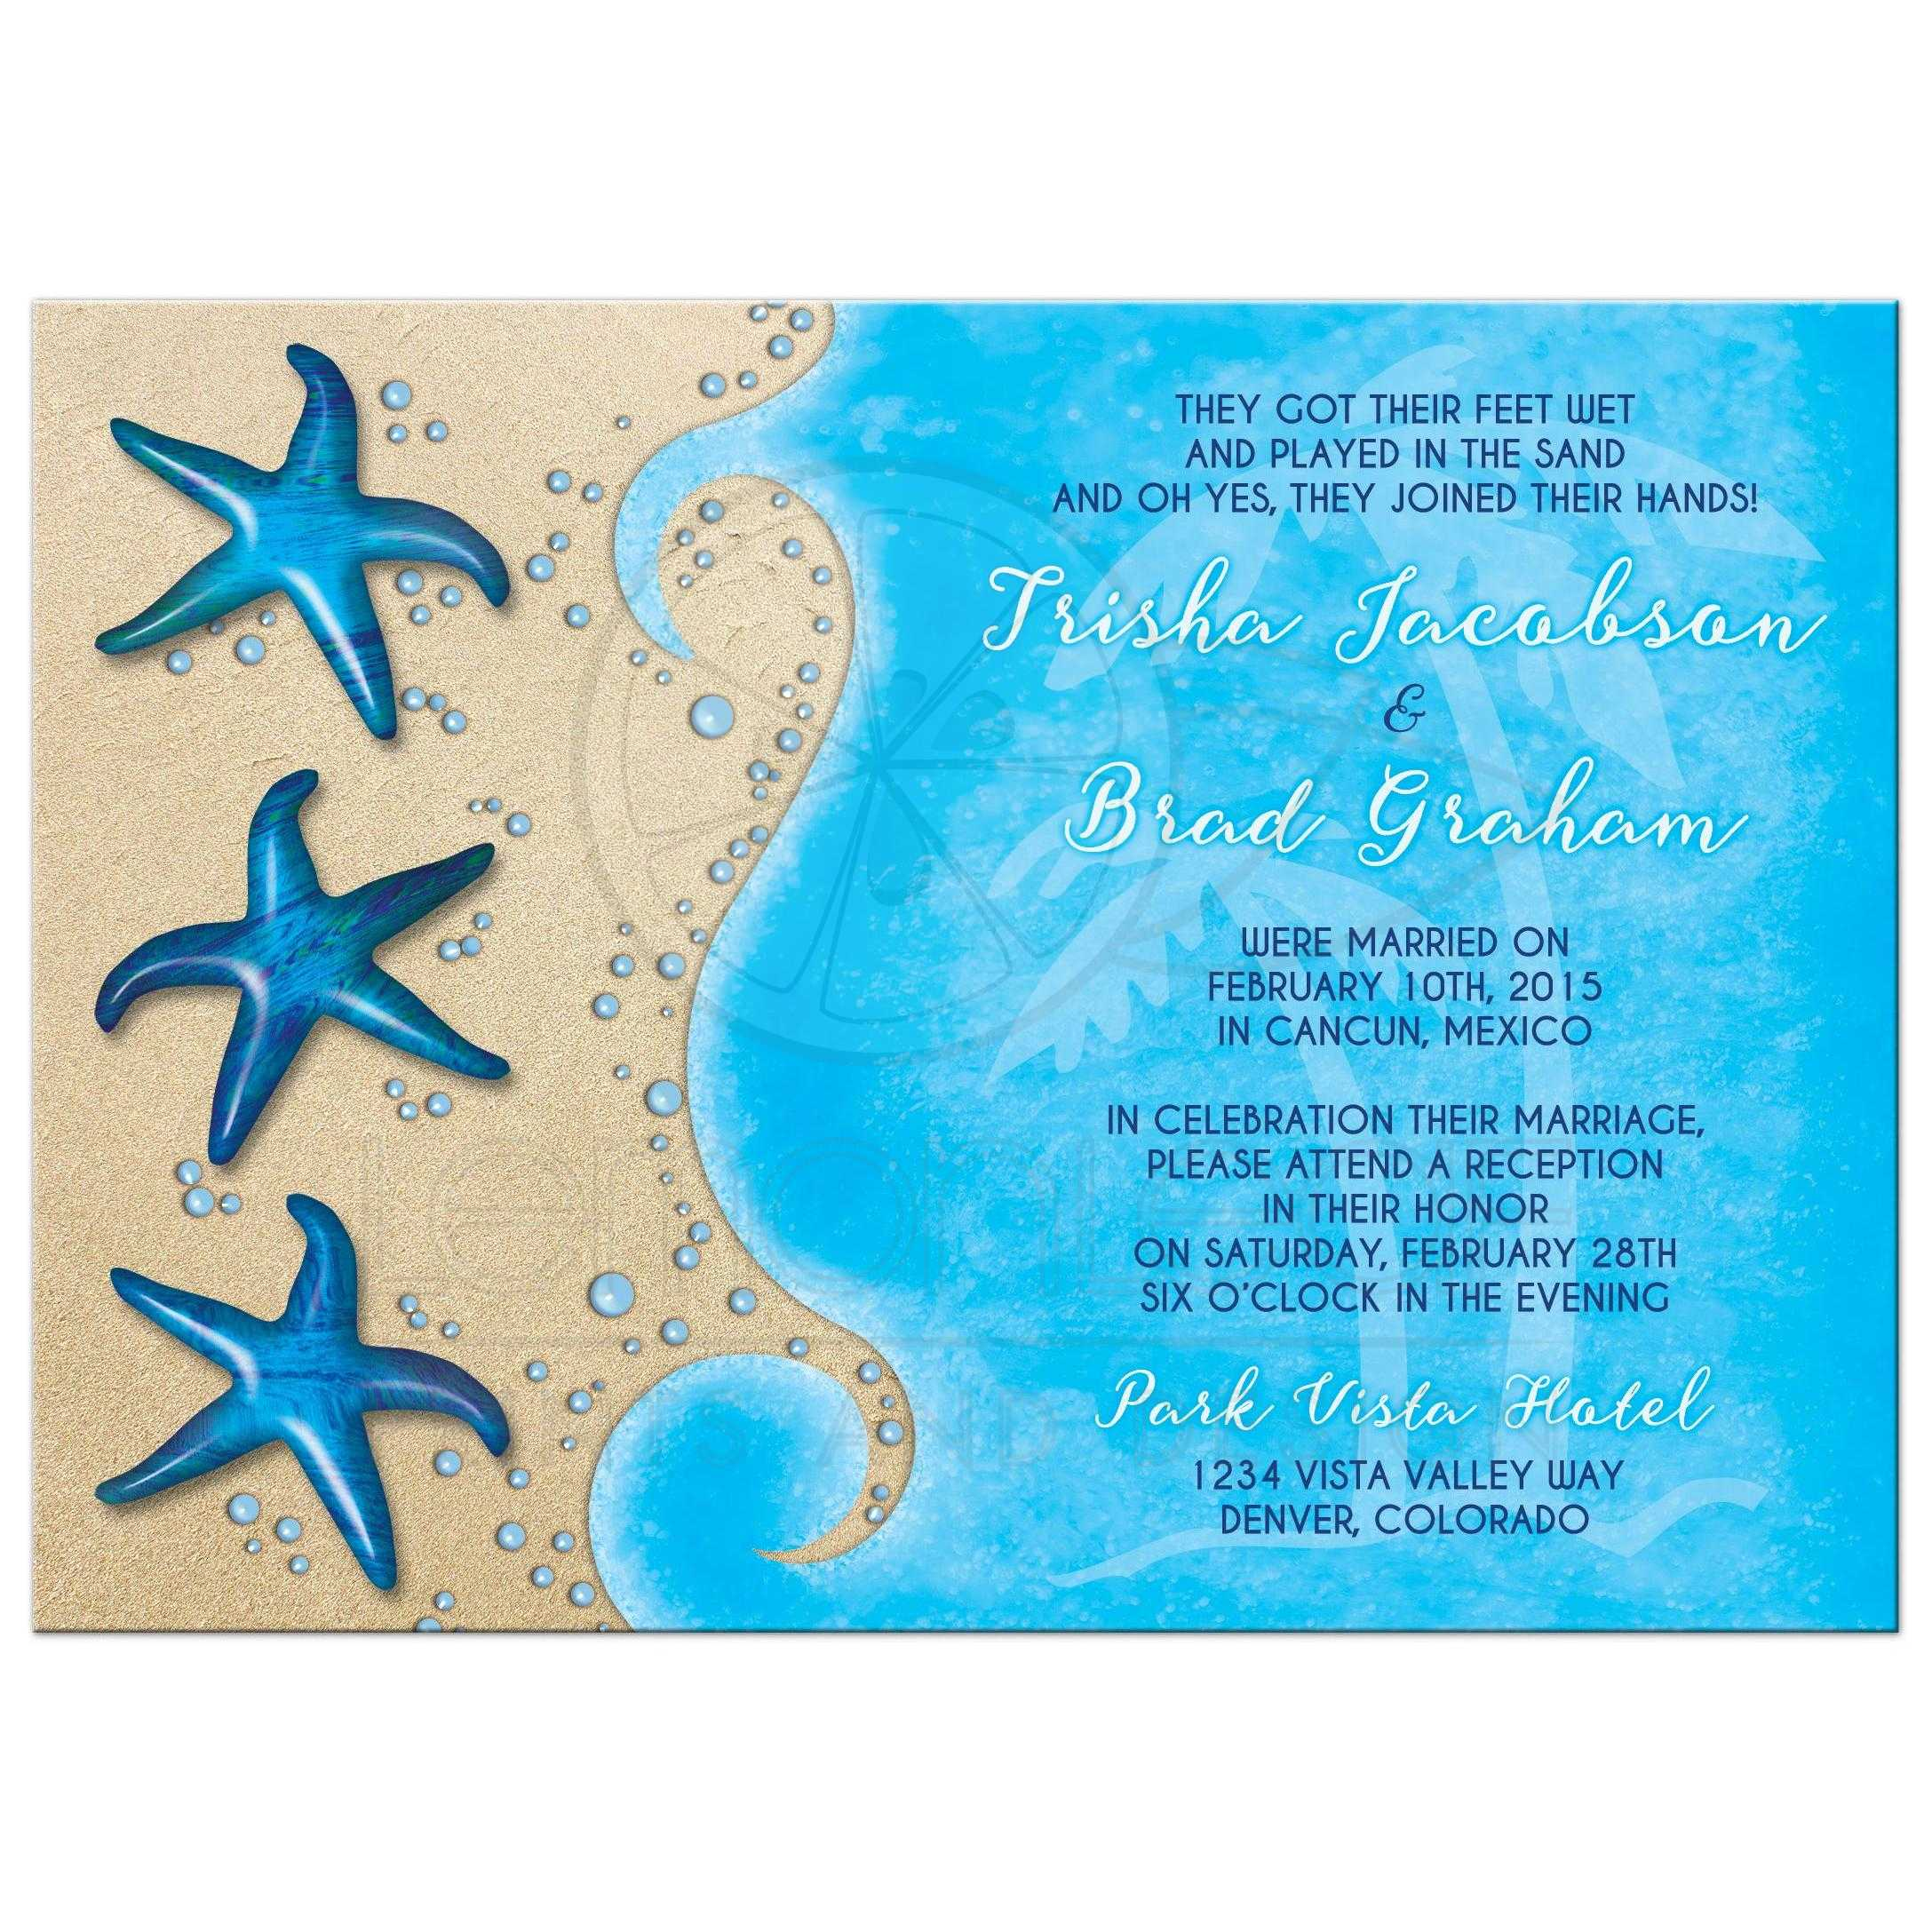 Wedding Reception Only Invitations: Tropical Post Wedding Reception Only Invitation Paua Shell